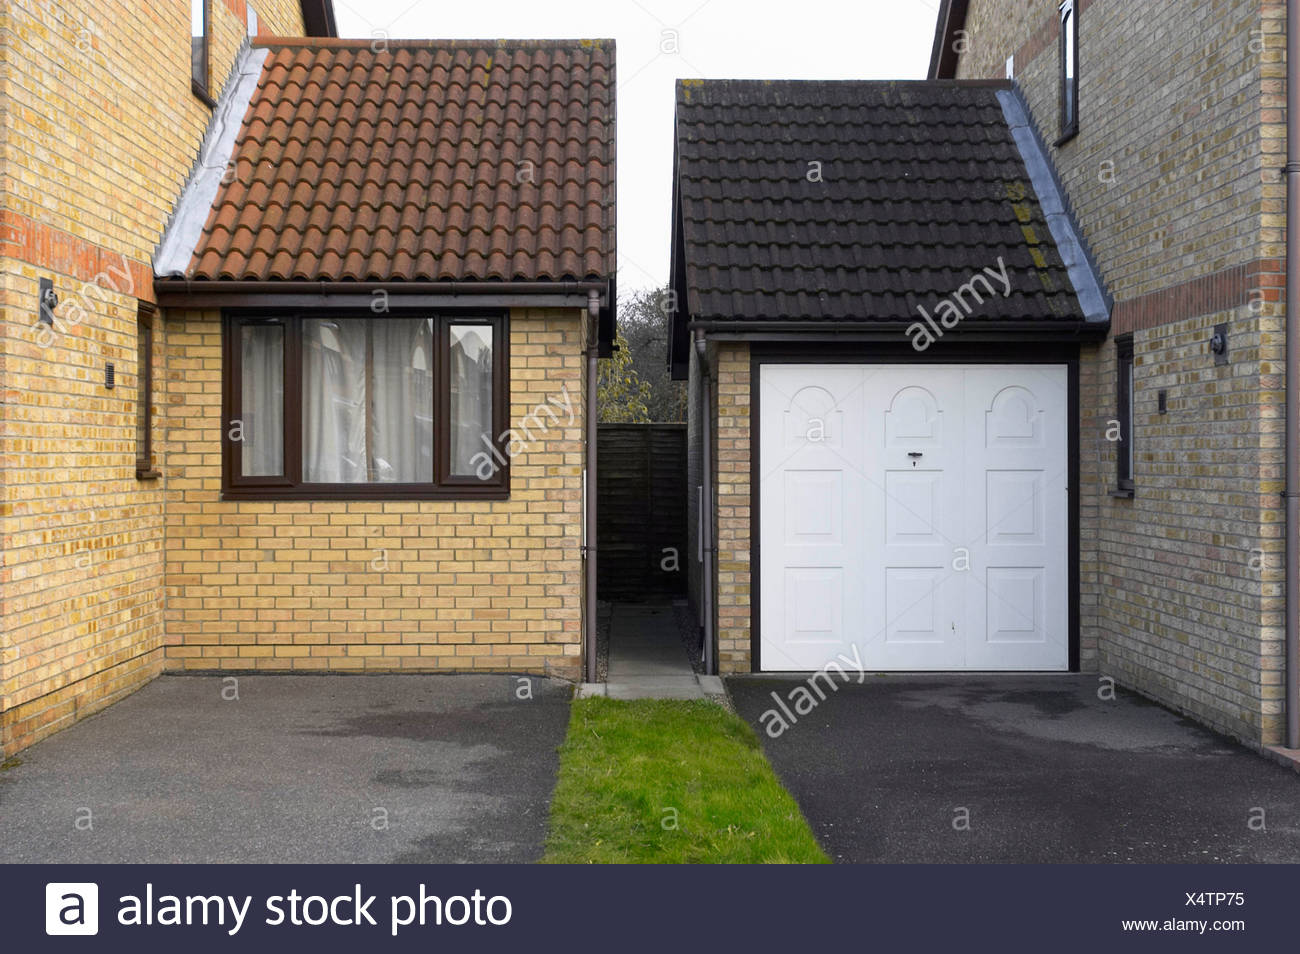 New Garage Extension And Entrance On A Side Of Houses Stock Photo